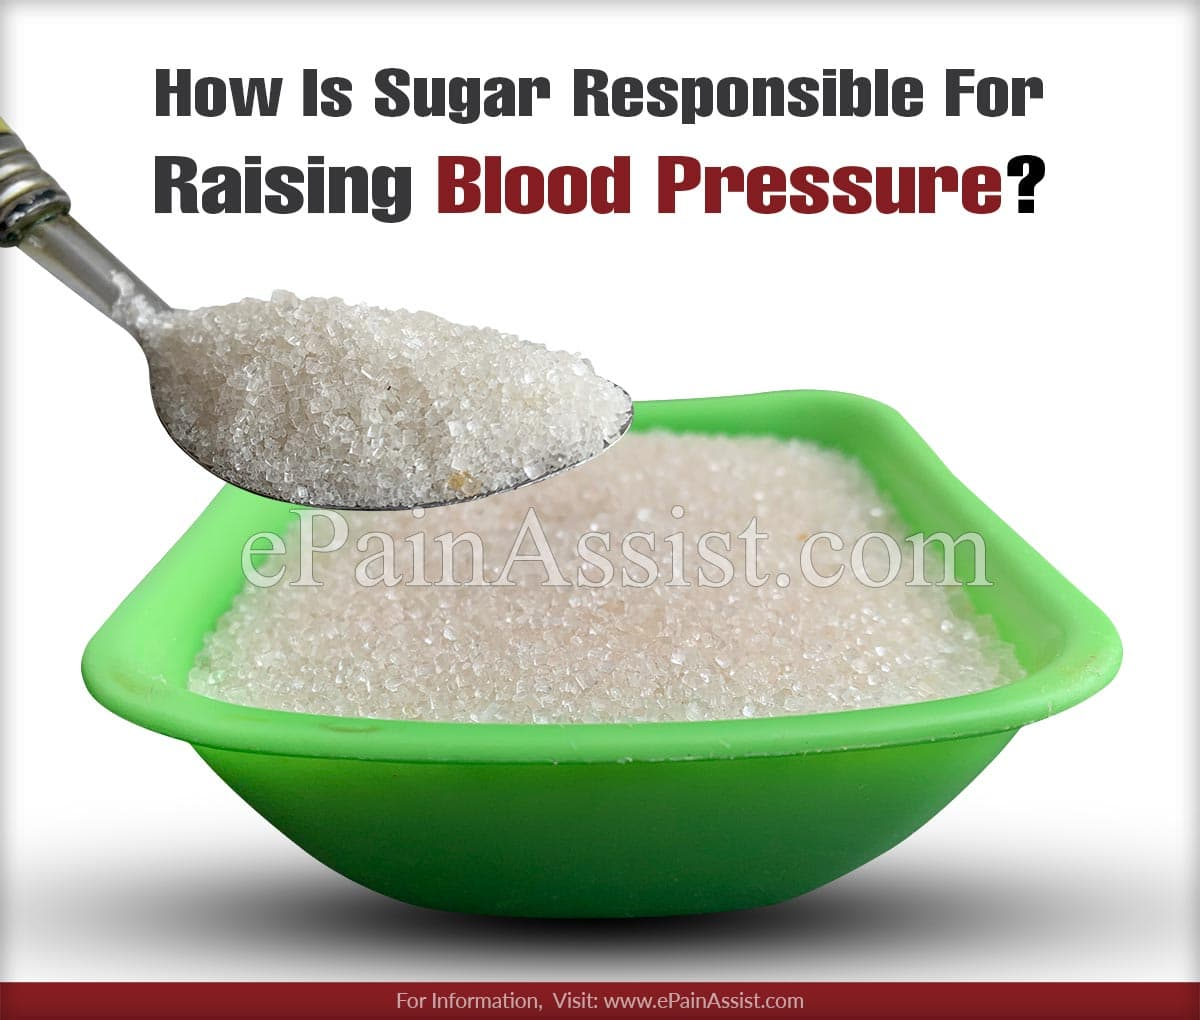 How Is Sugar Responsible For Raising Blood Pressure?